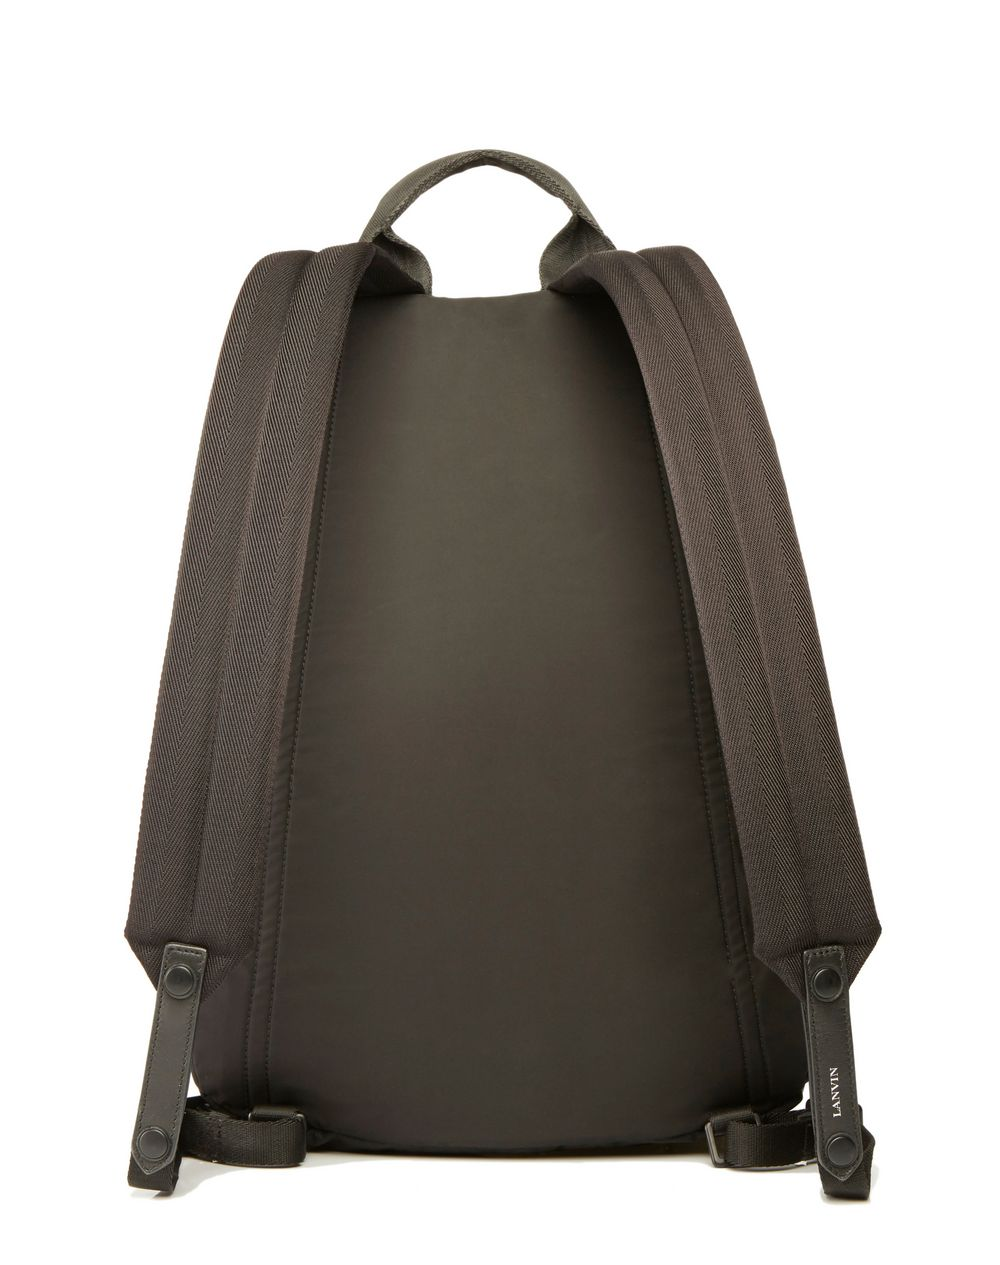 """PARADISE"" ZIPPERED BACKPACK - Lanvin"